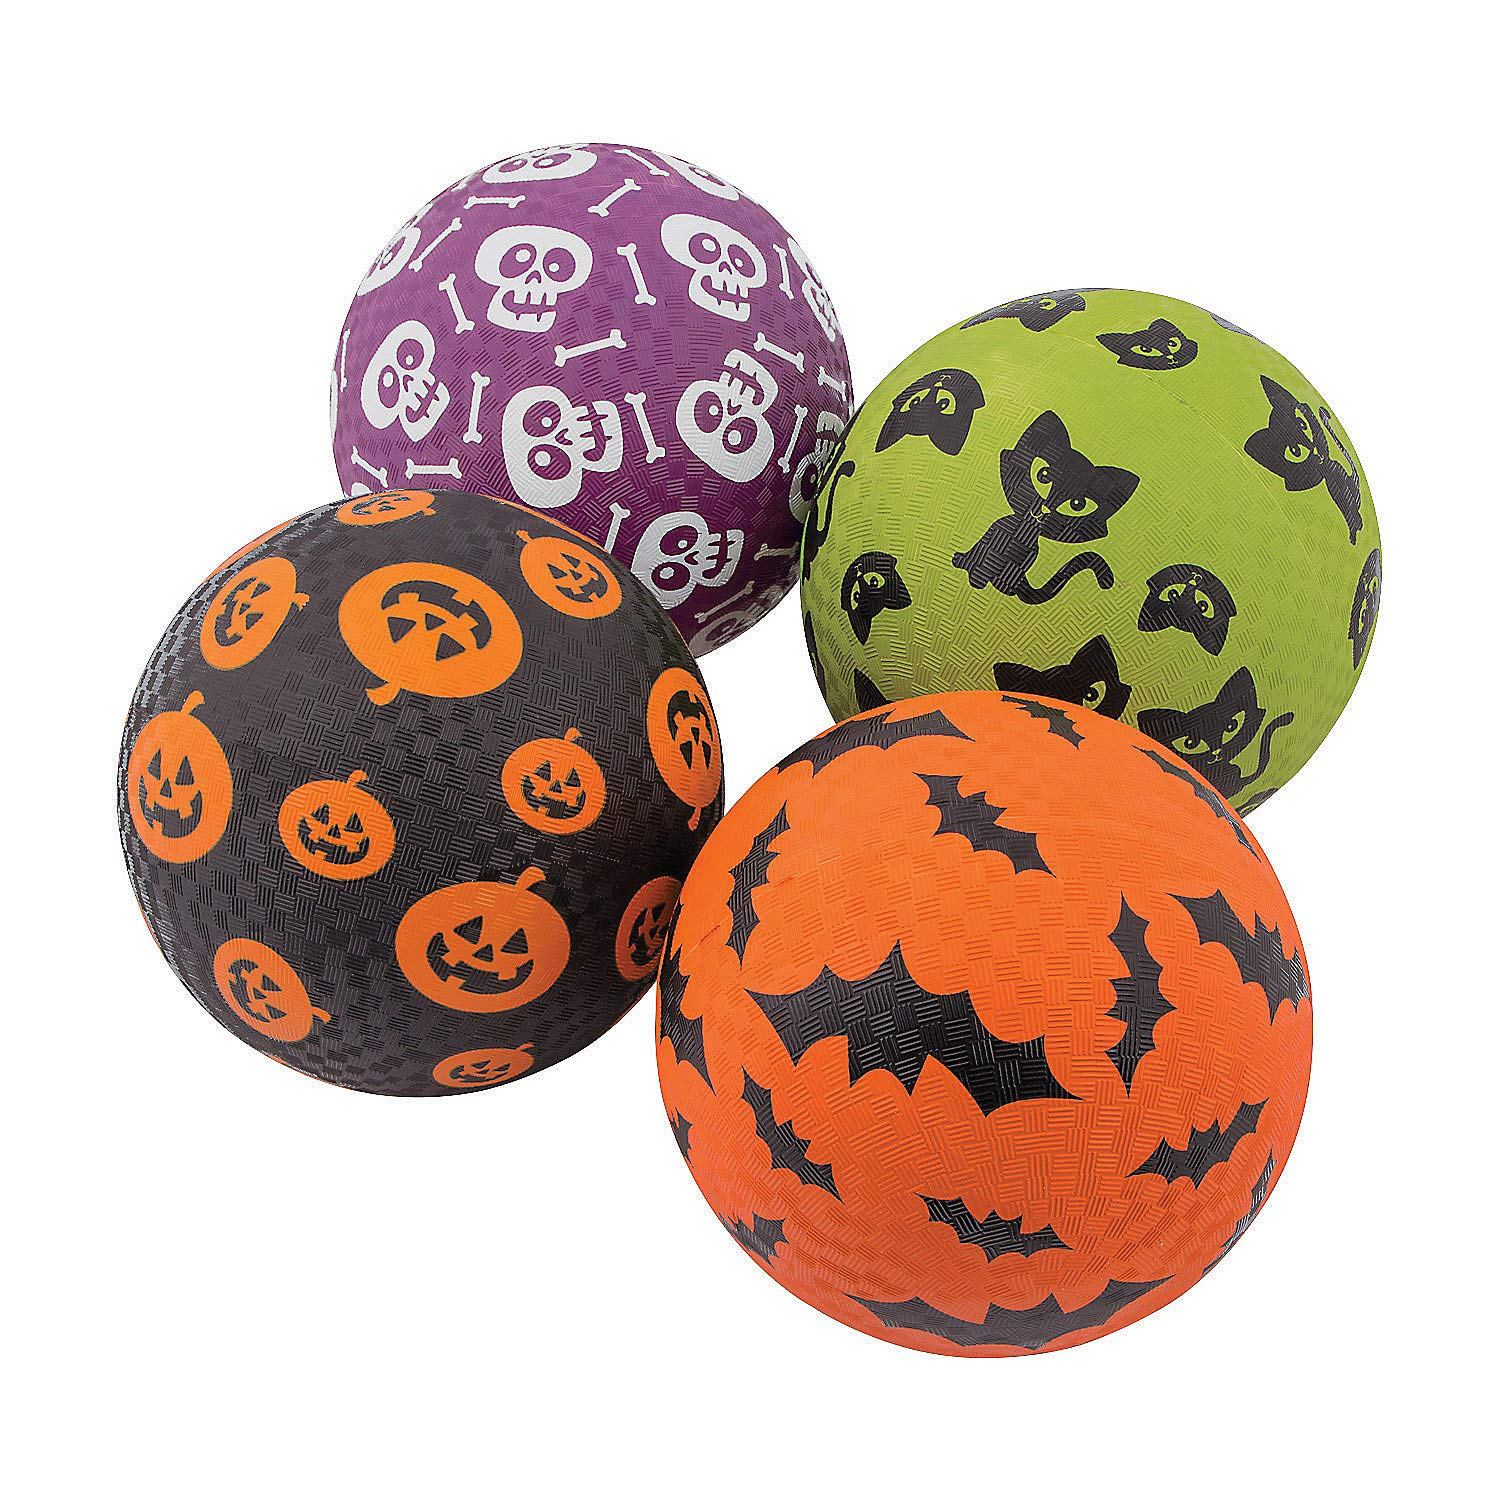 Fun Express Halloween Playground Balls for Halloween - Toys - Balls - Playground Balls - Halloween - 4 Pieces by Fun Express